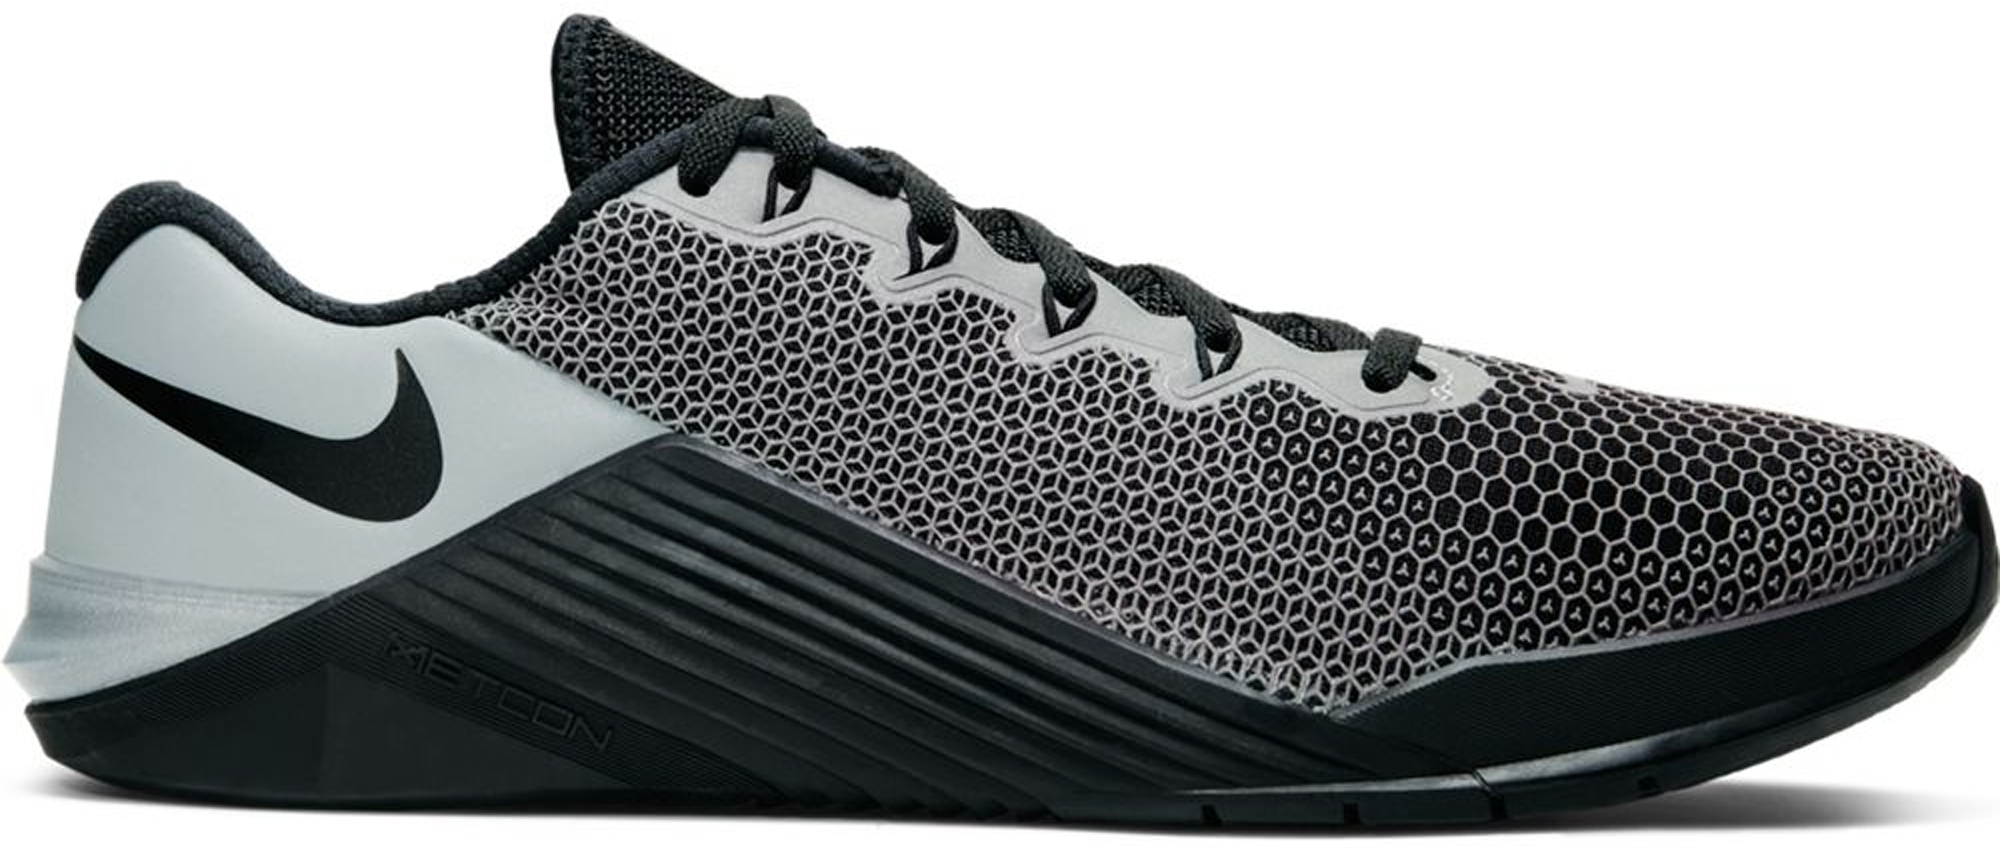 Nike Metcon 5 Night Time Shine In Black/Silver-Black